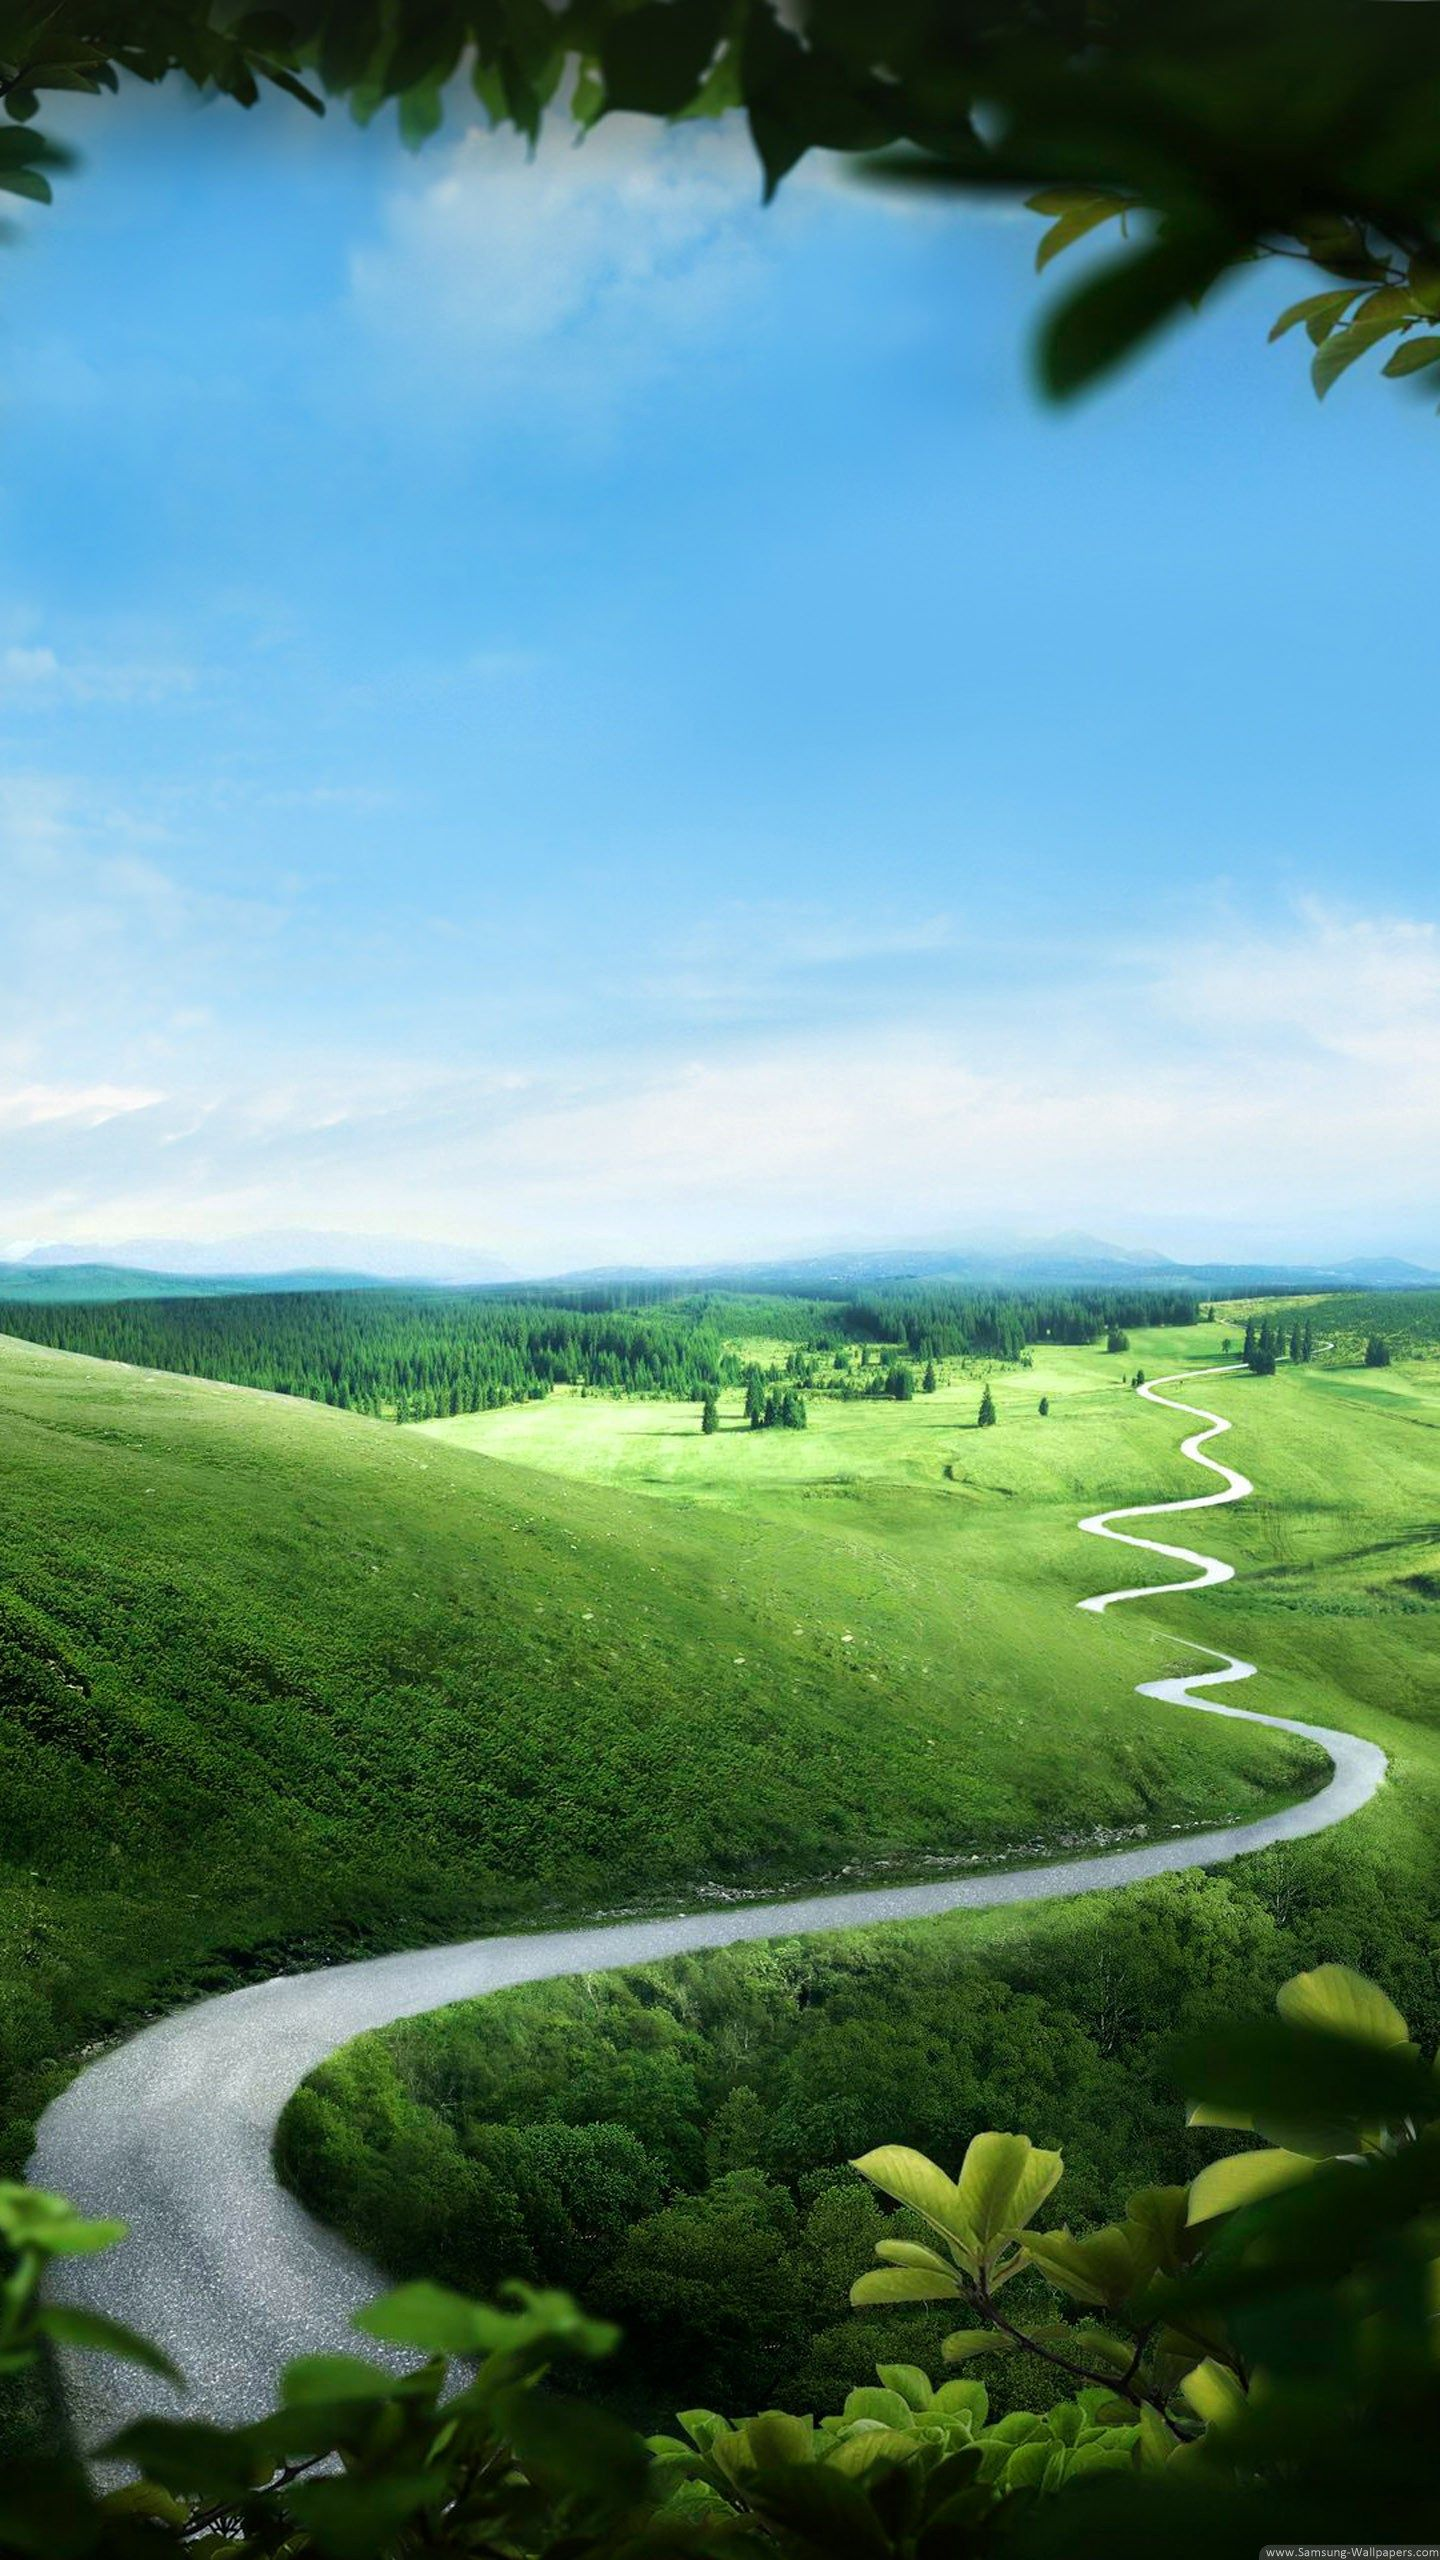 1440x2560 Hd Nature Wallpapers Landscape Wallpaper Green Nature